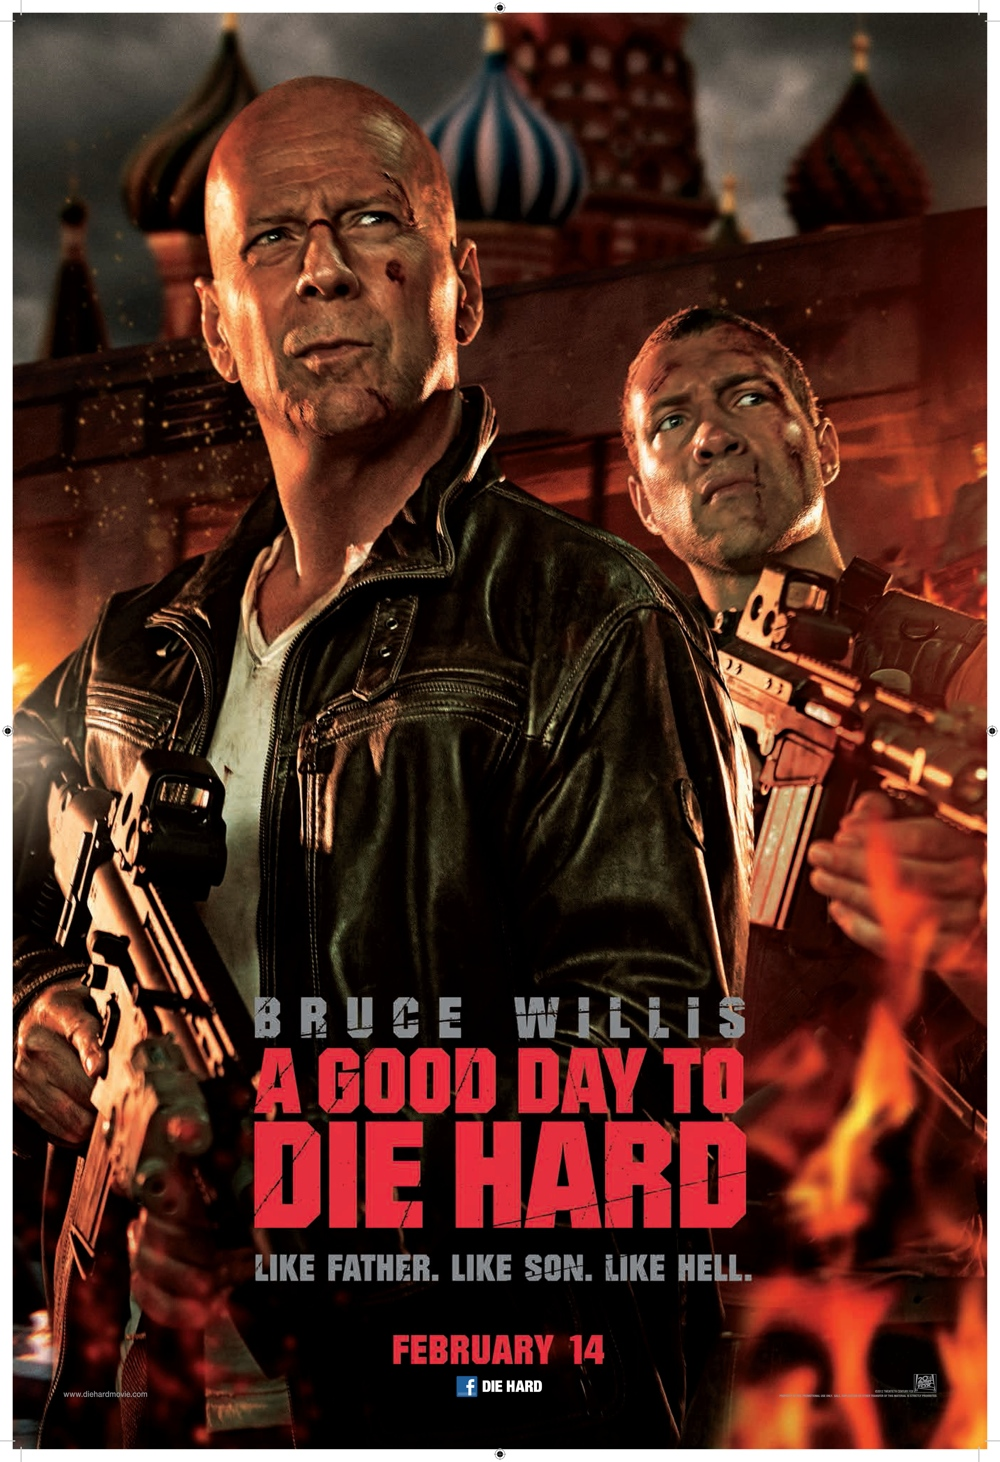 a good day to die hard  uk poster